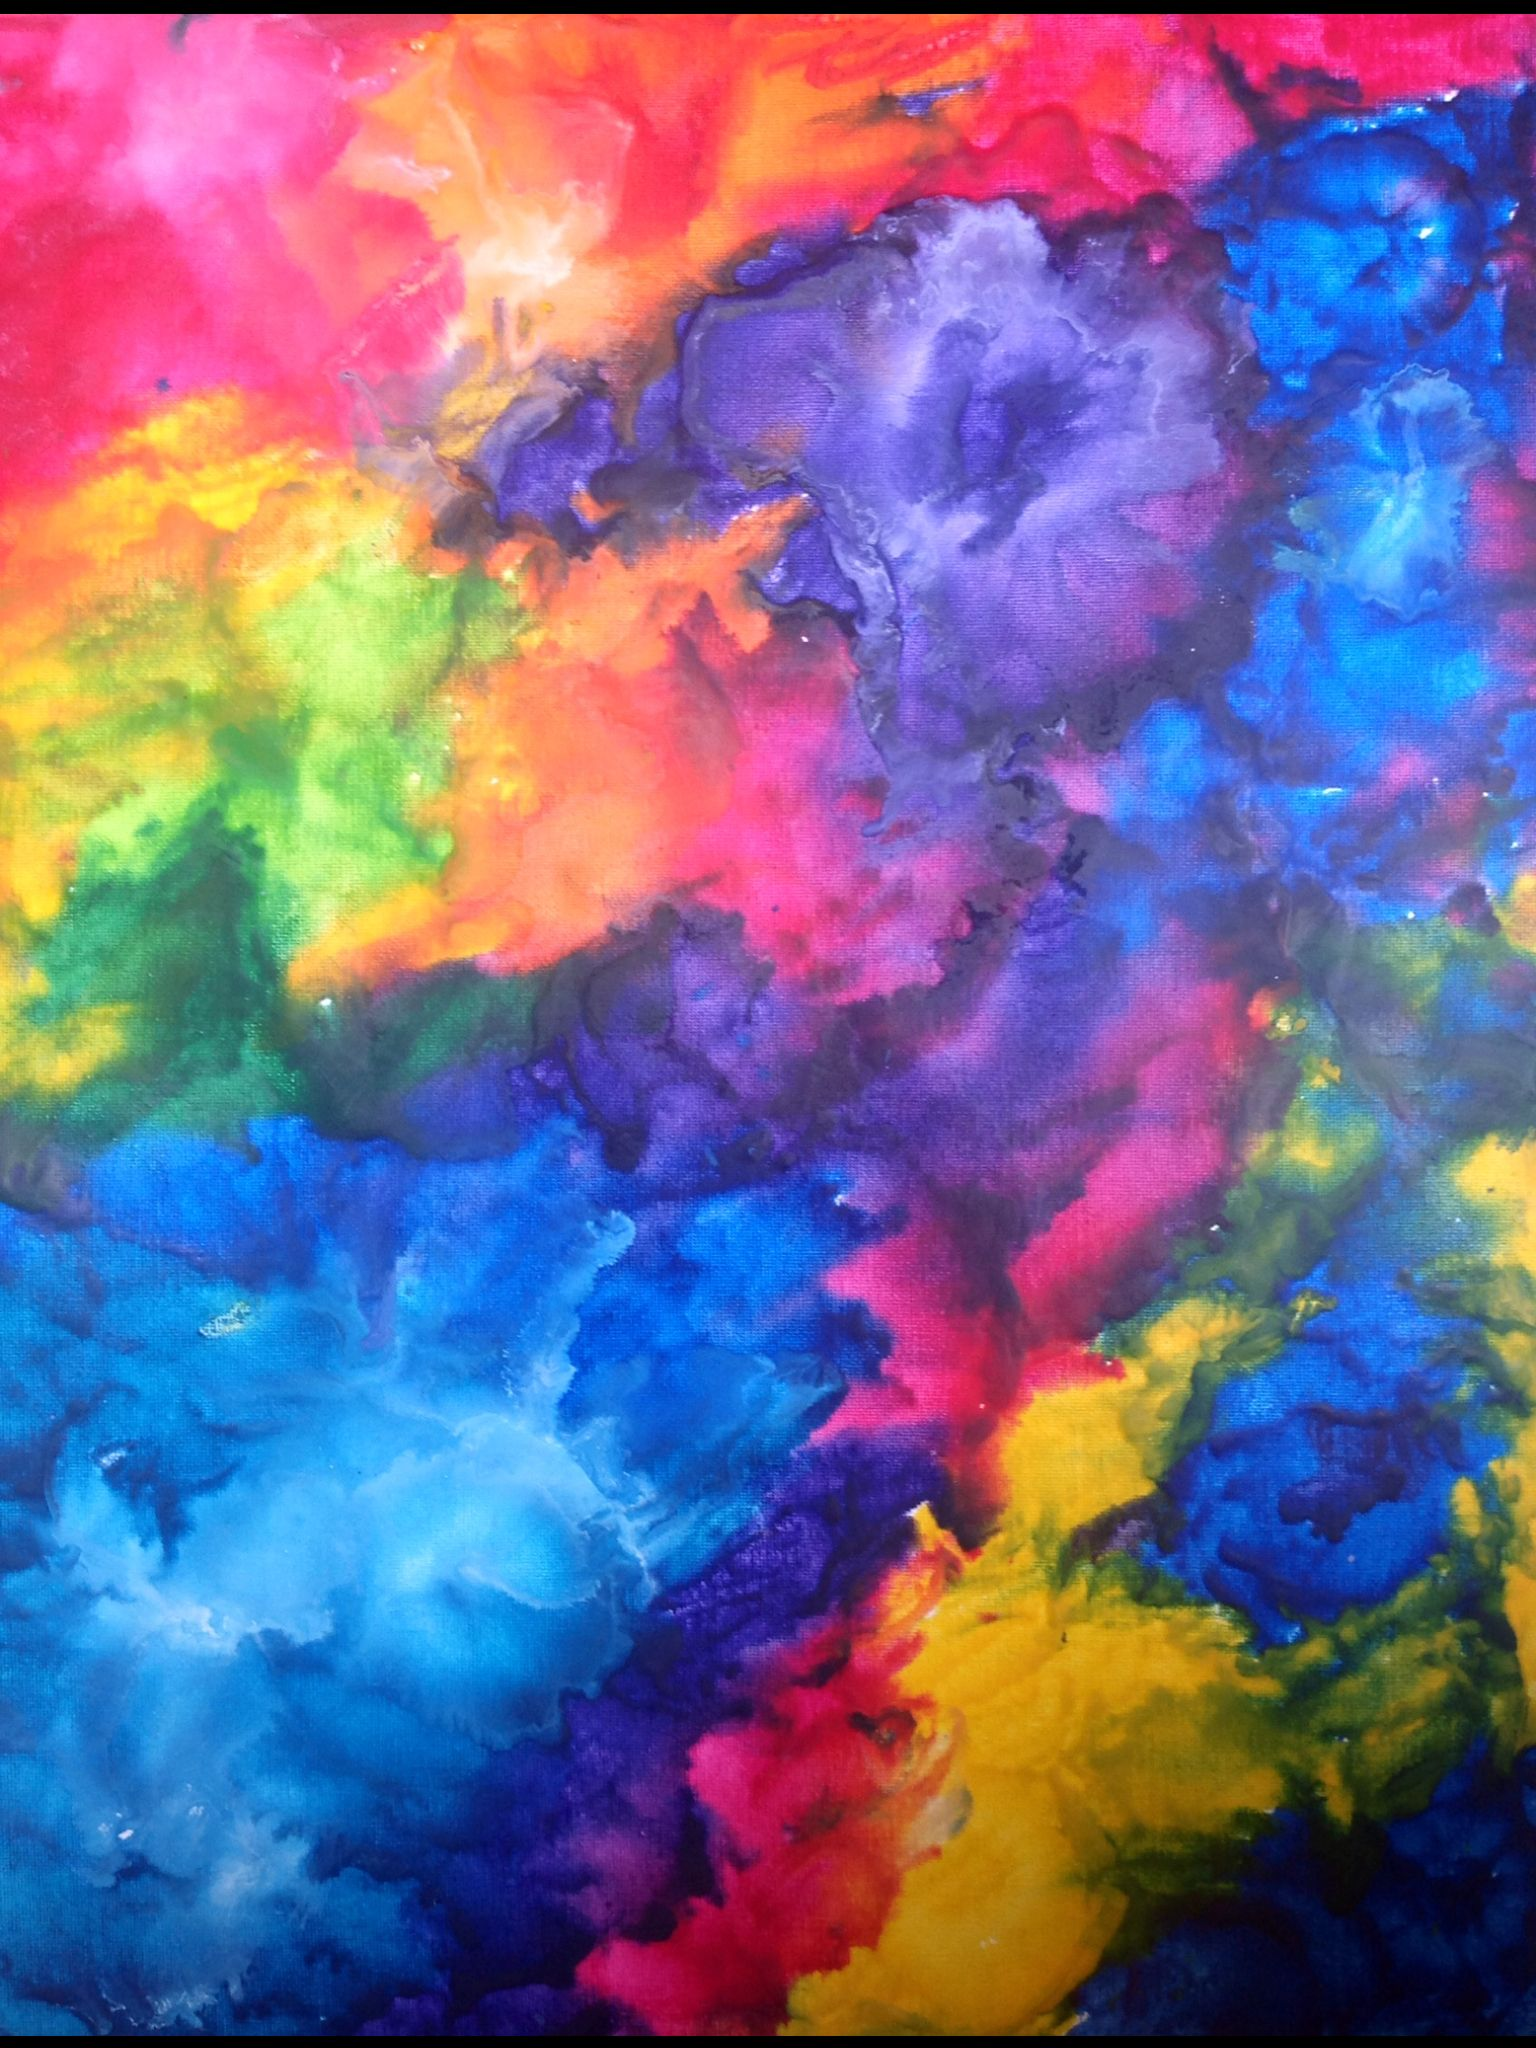 Pin By Paige West On My Work Spray Paint Art Watercolor Clouds Abstract